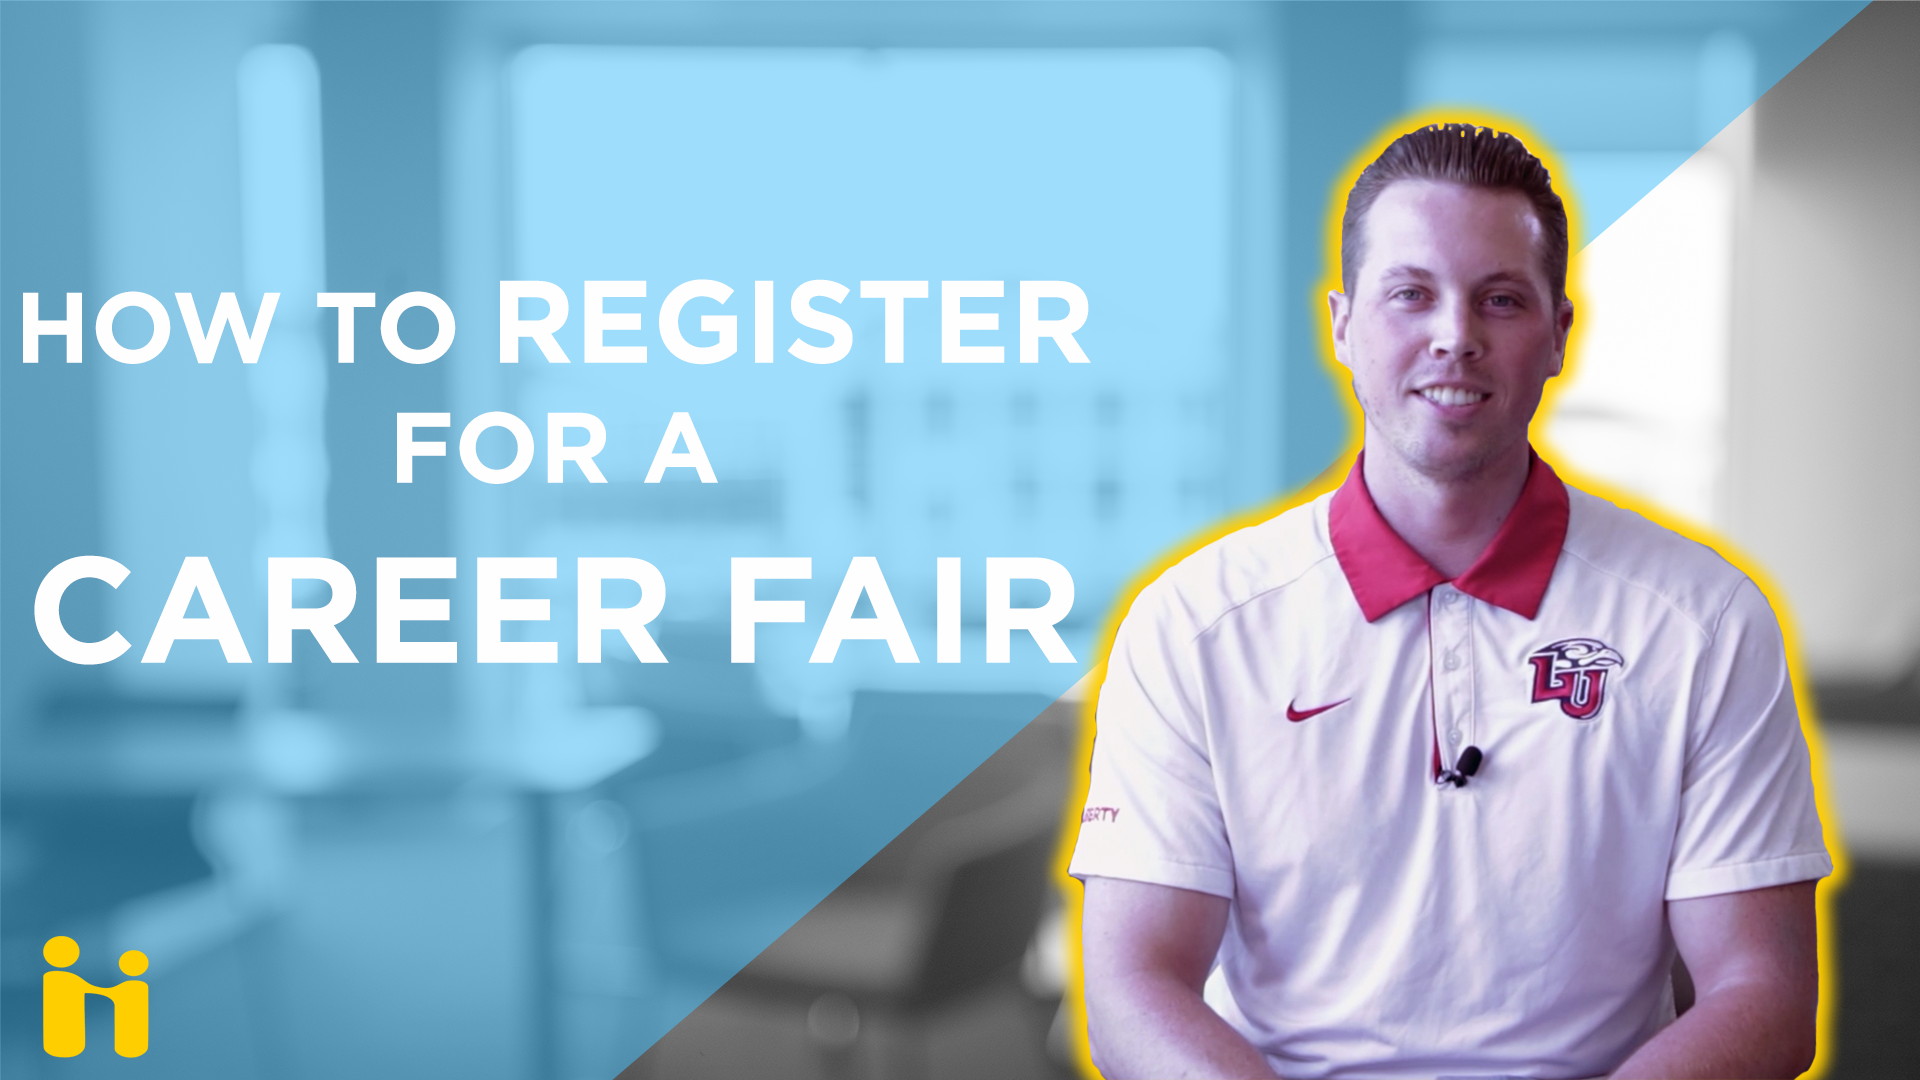 How to Register for a Career Fair